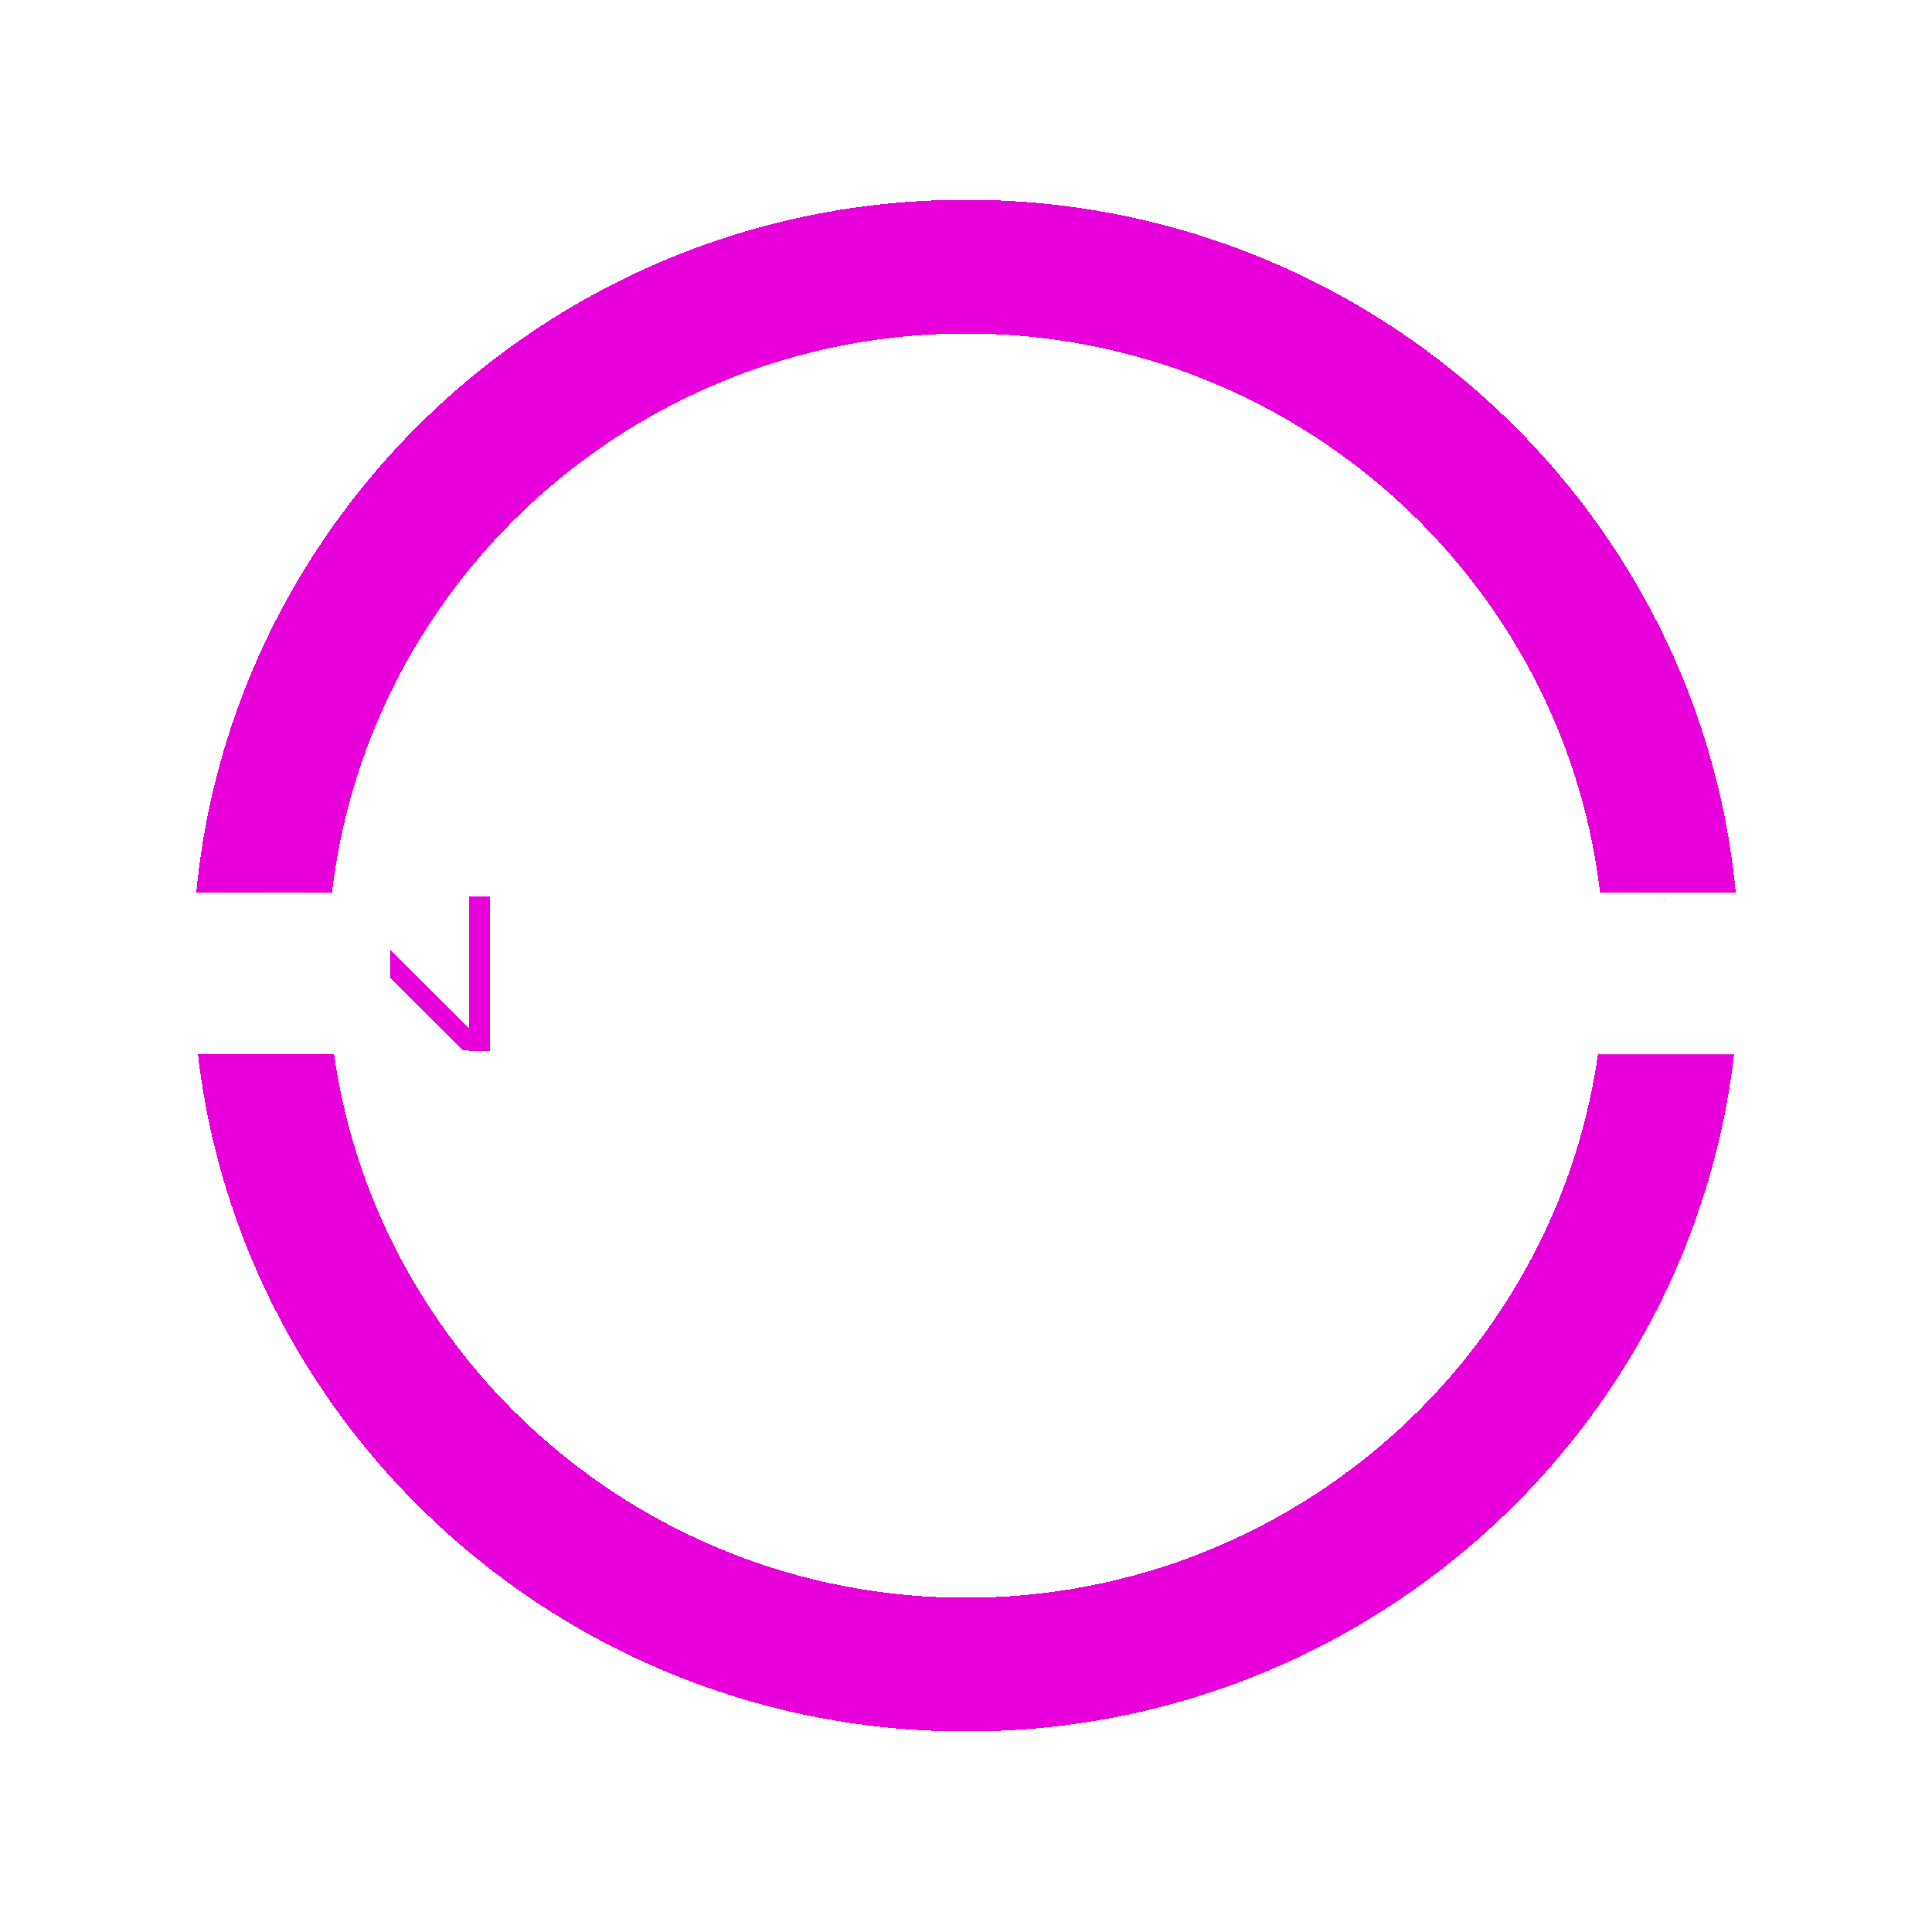 Andy Duguid official merchandise